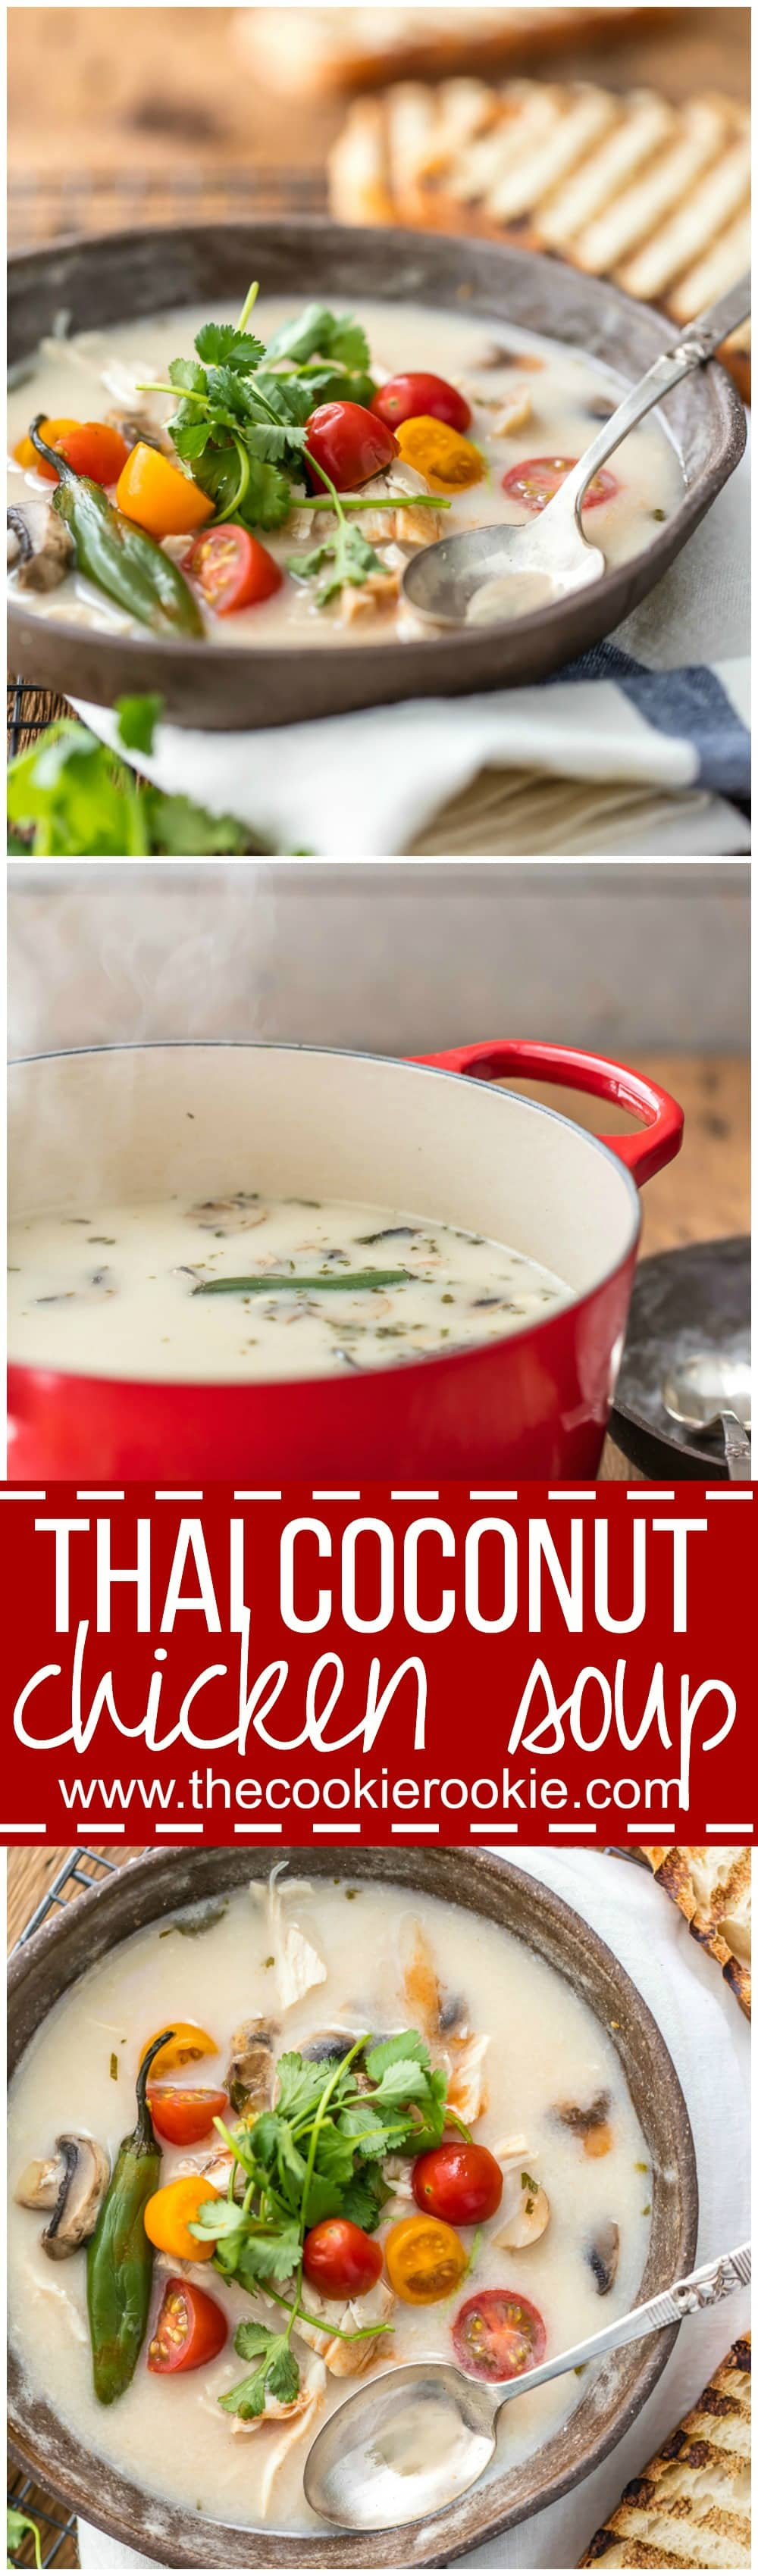 Thai Coconut Chicken Soup is healthy, EASY, and SO DELICIOUS! Loaded with cilantro, mushrooms, chicken, tomato, and chiles; so much flavor in such an easy Thai recipe! Perfect soup recipe!